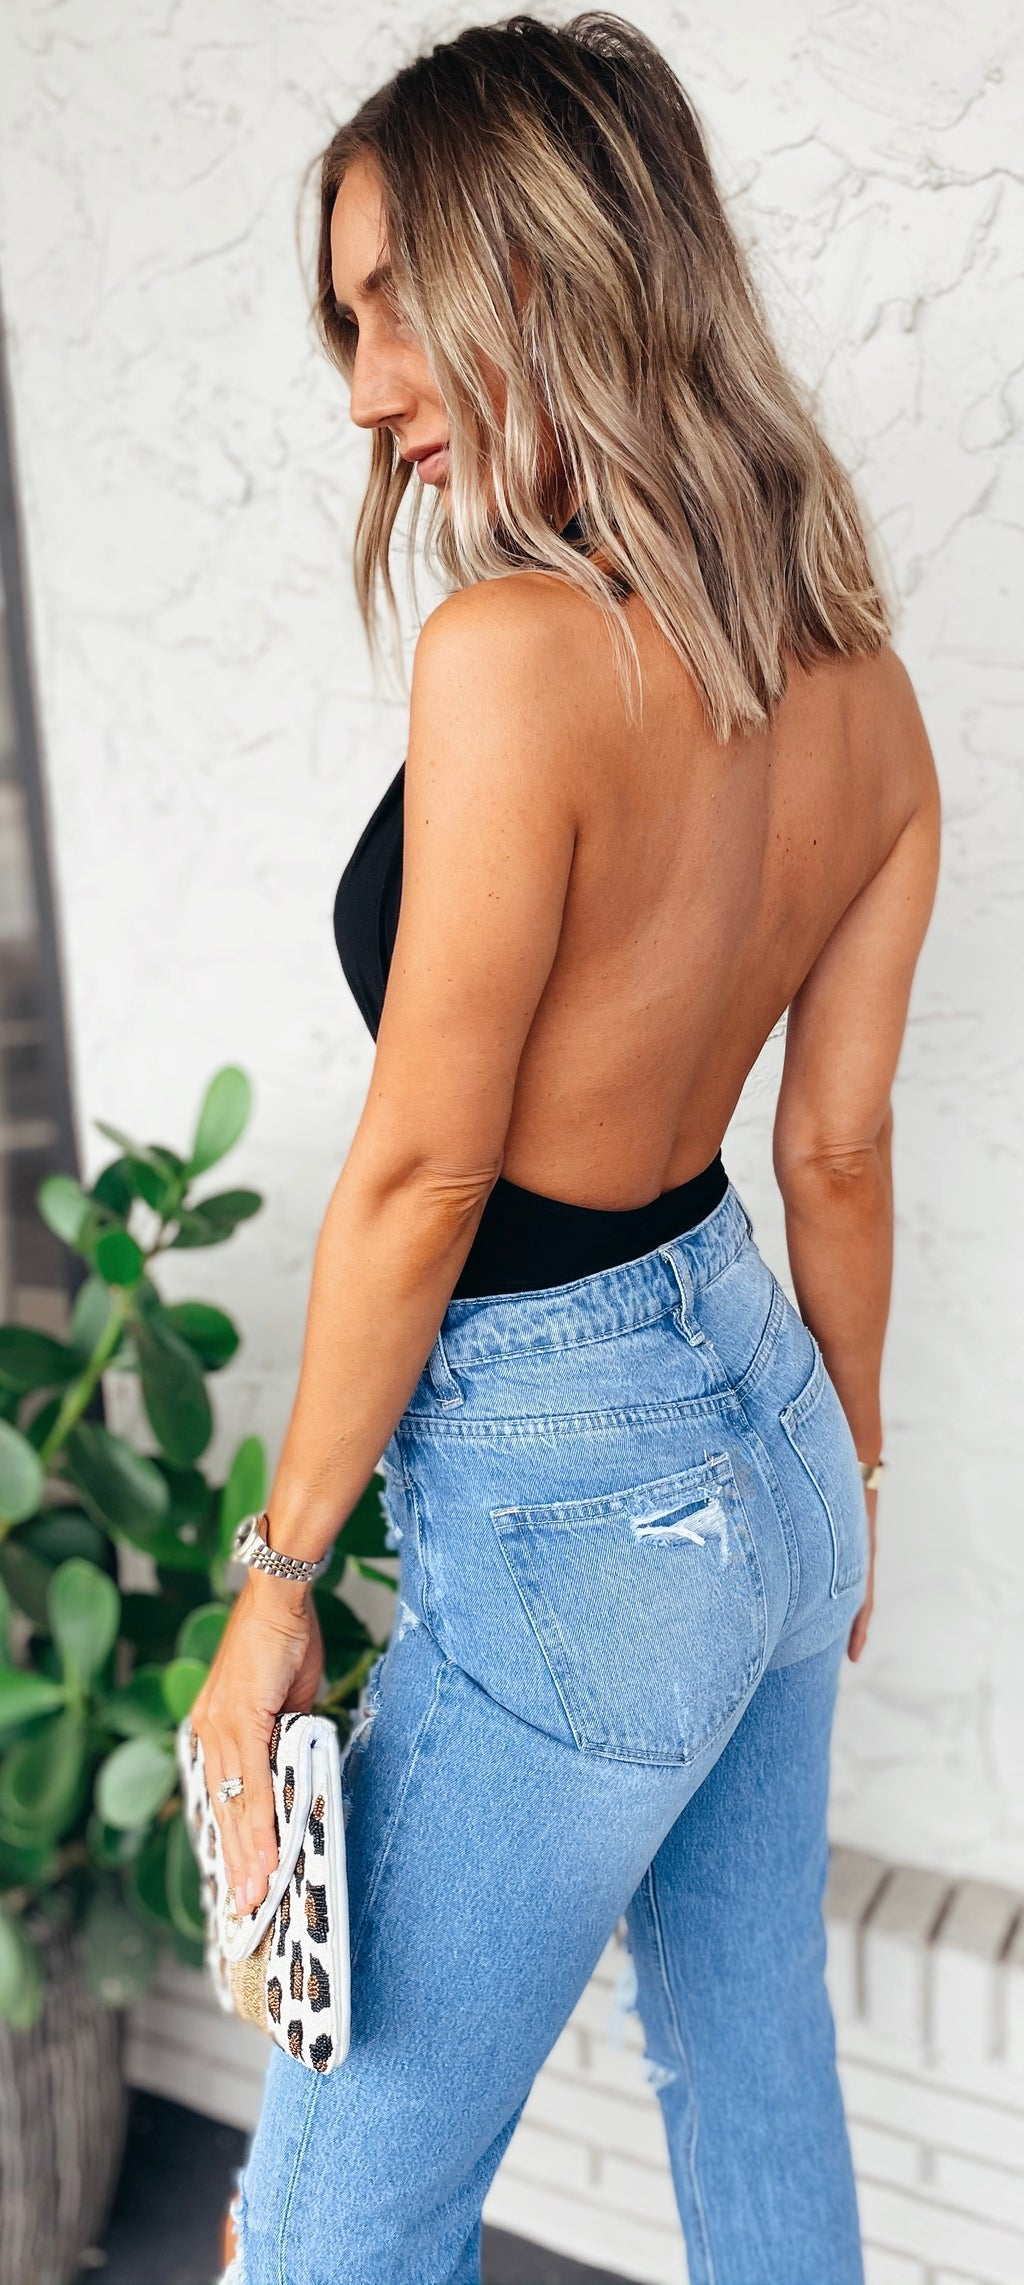 The Luna Halter Bodysuit